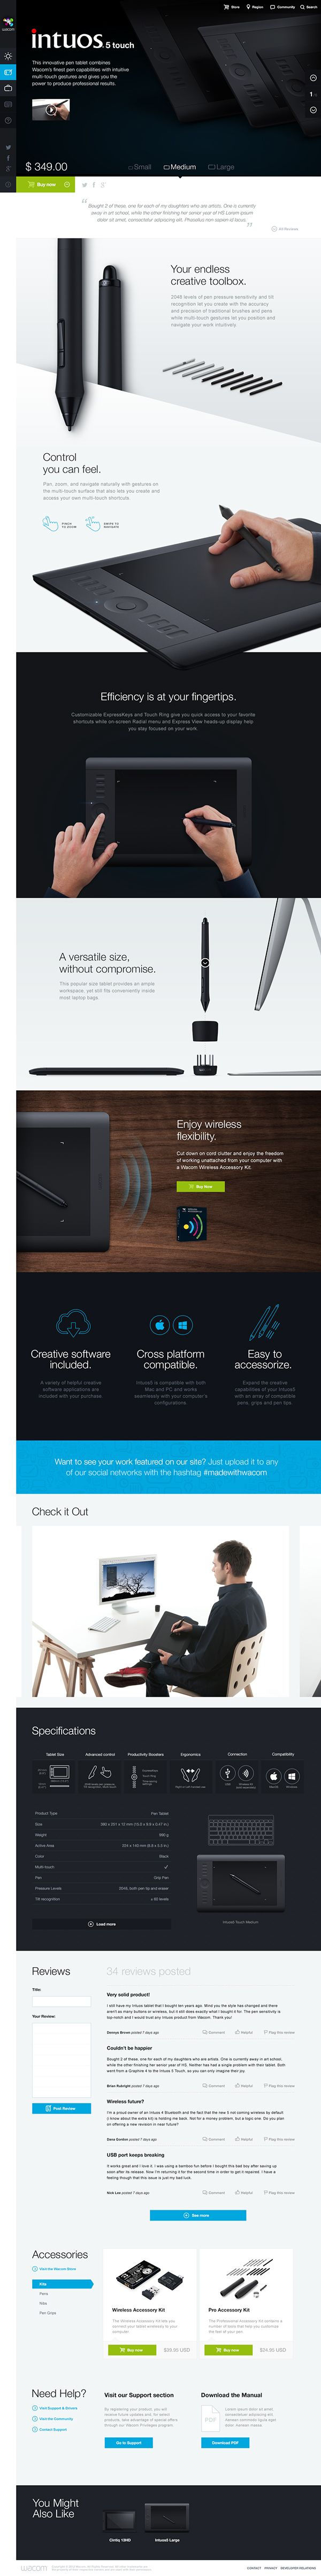 Wacom.com Re-Design by Tobias van Schneider, via Behance